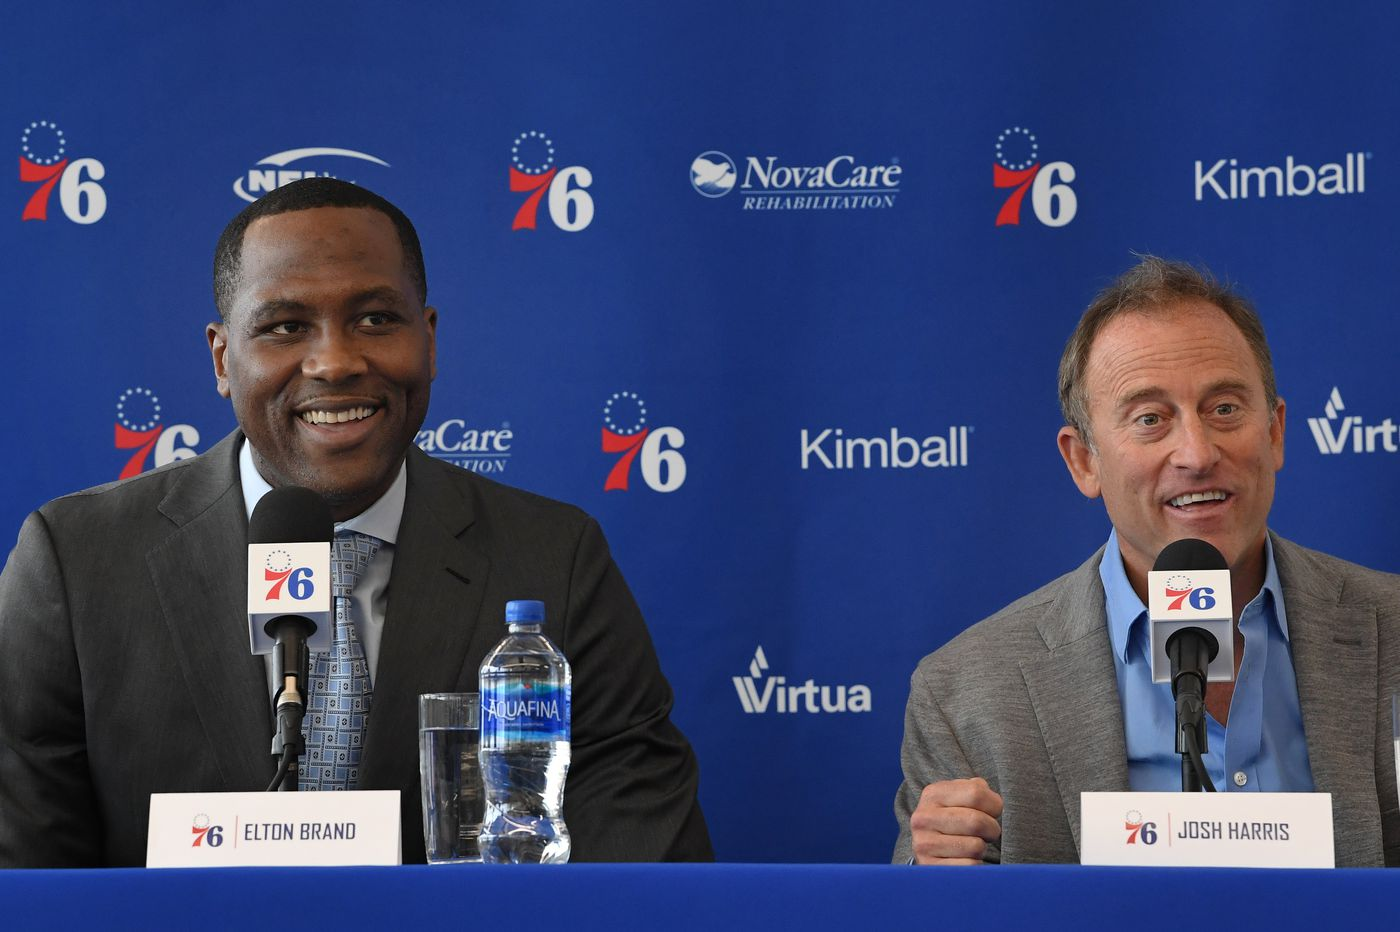 As Sixers GM, Elton Brand will take the heat that others didn't or wouldn't   Mike Sielski